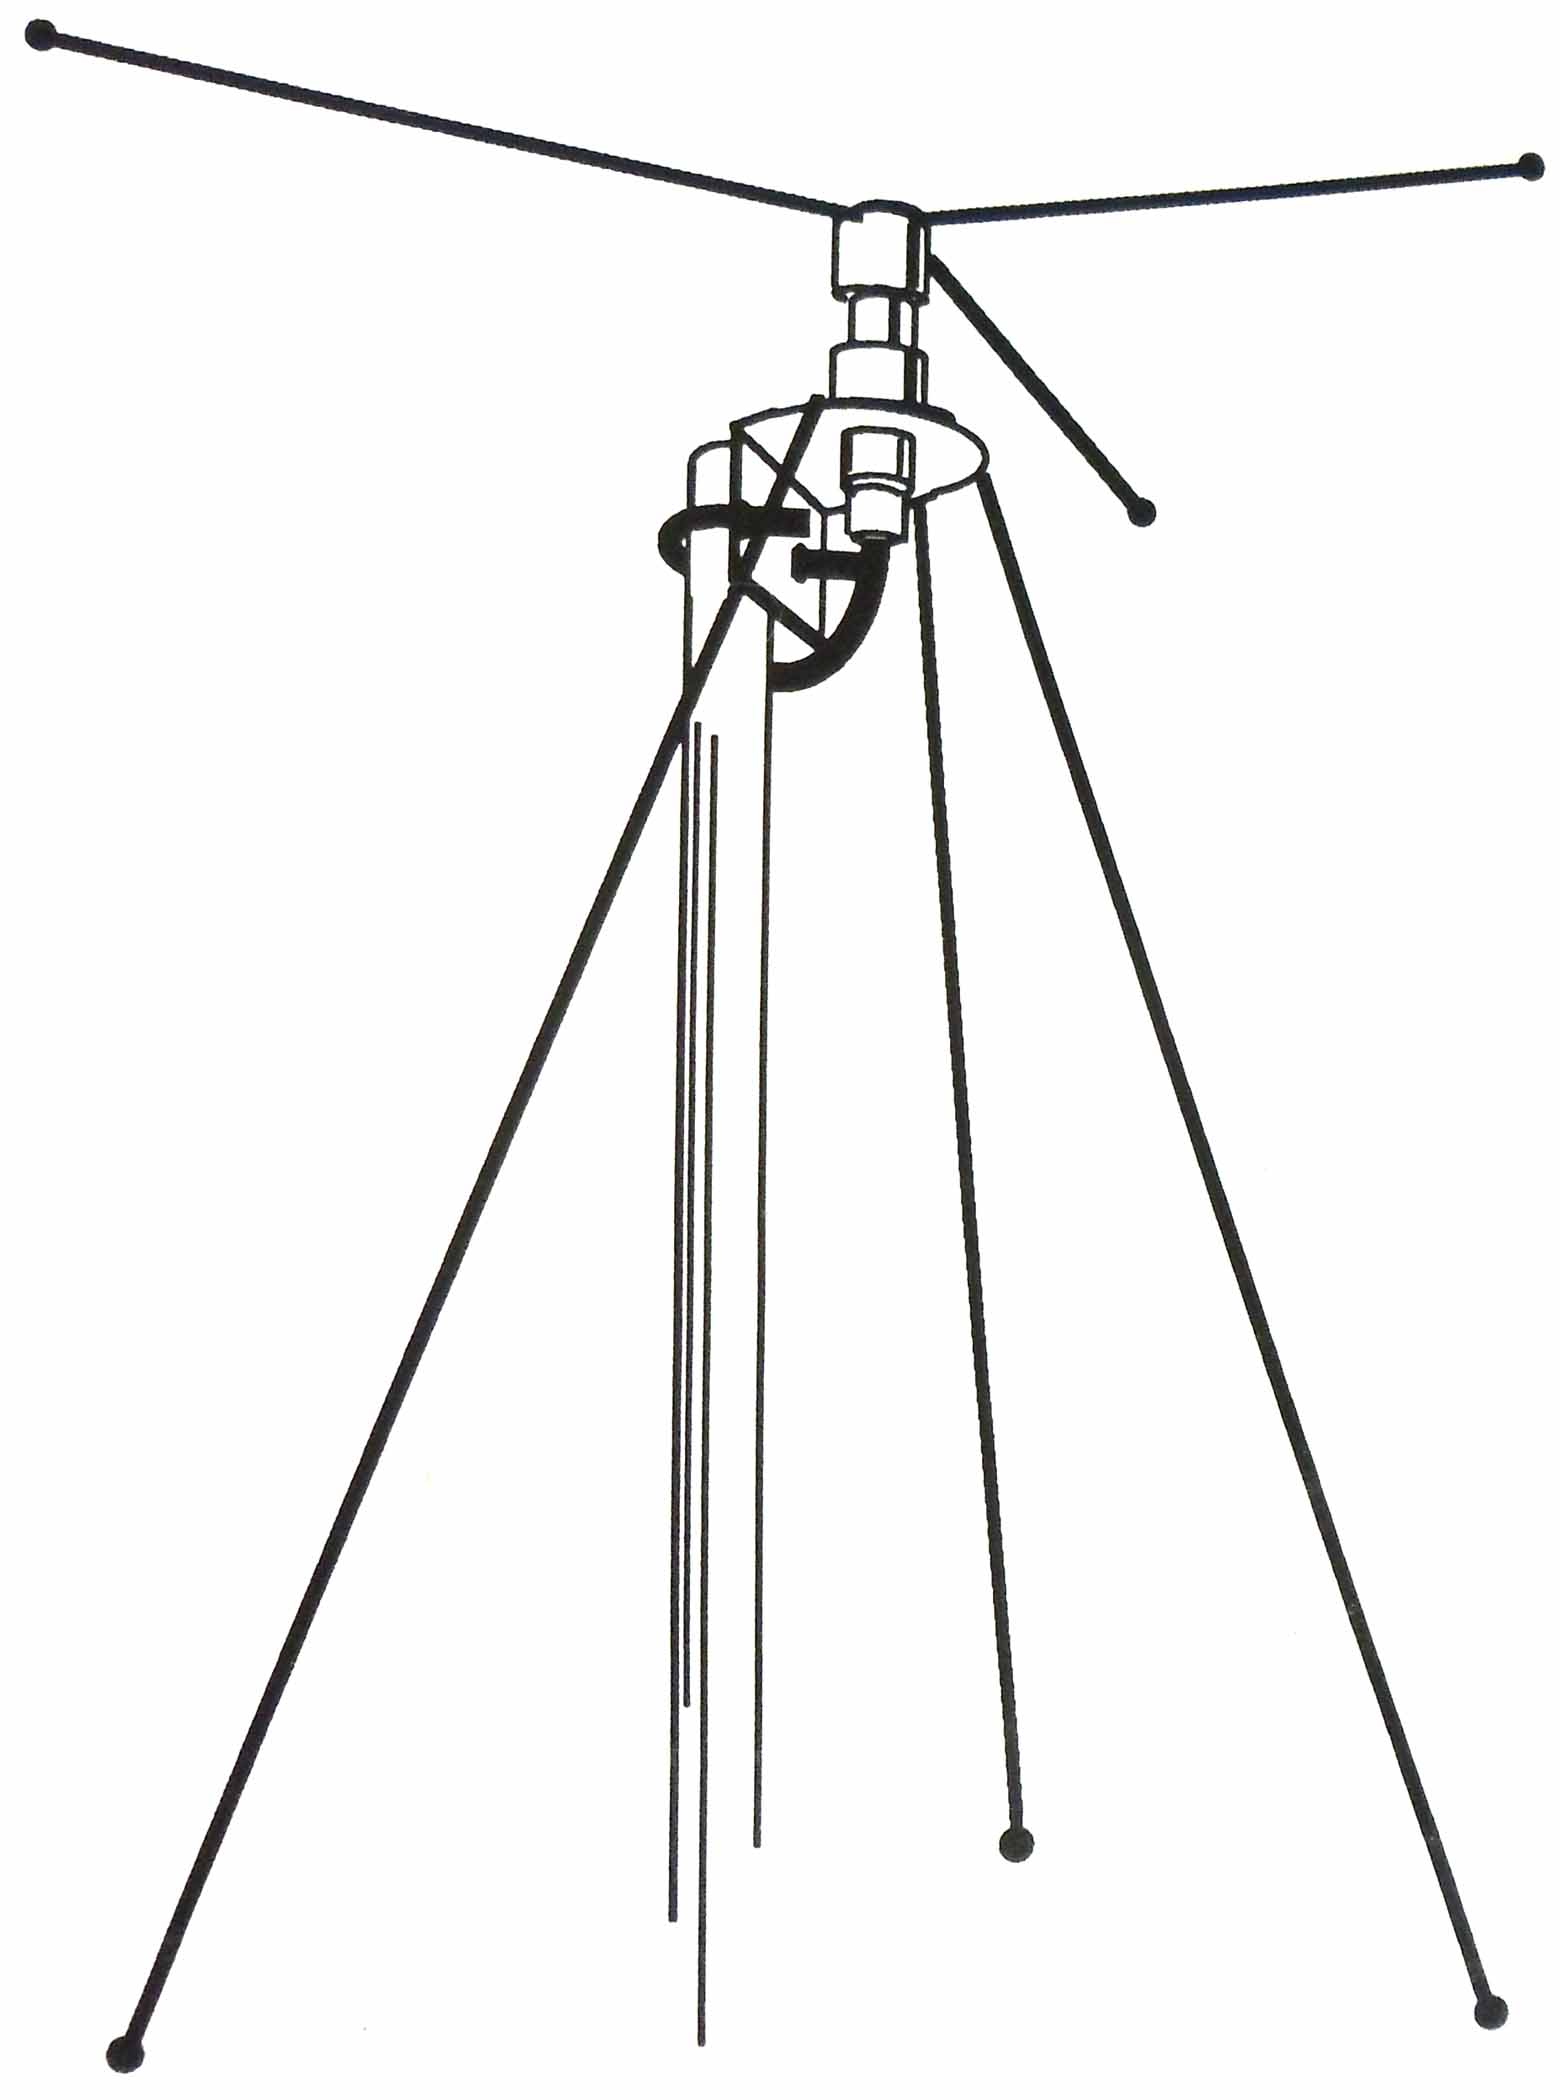 DCL-BN - Hustler Discone Base Scanner Antenna With 50' Coax & Bnc